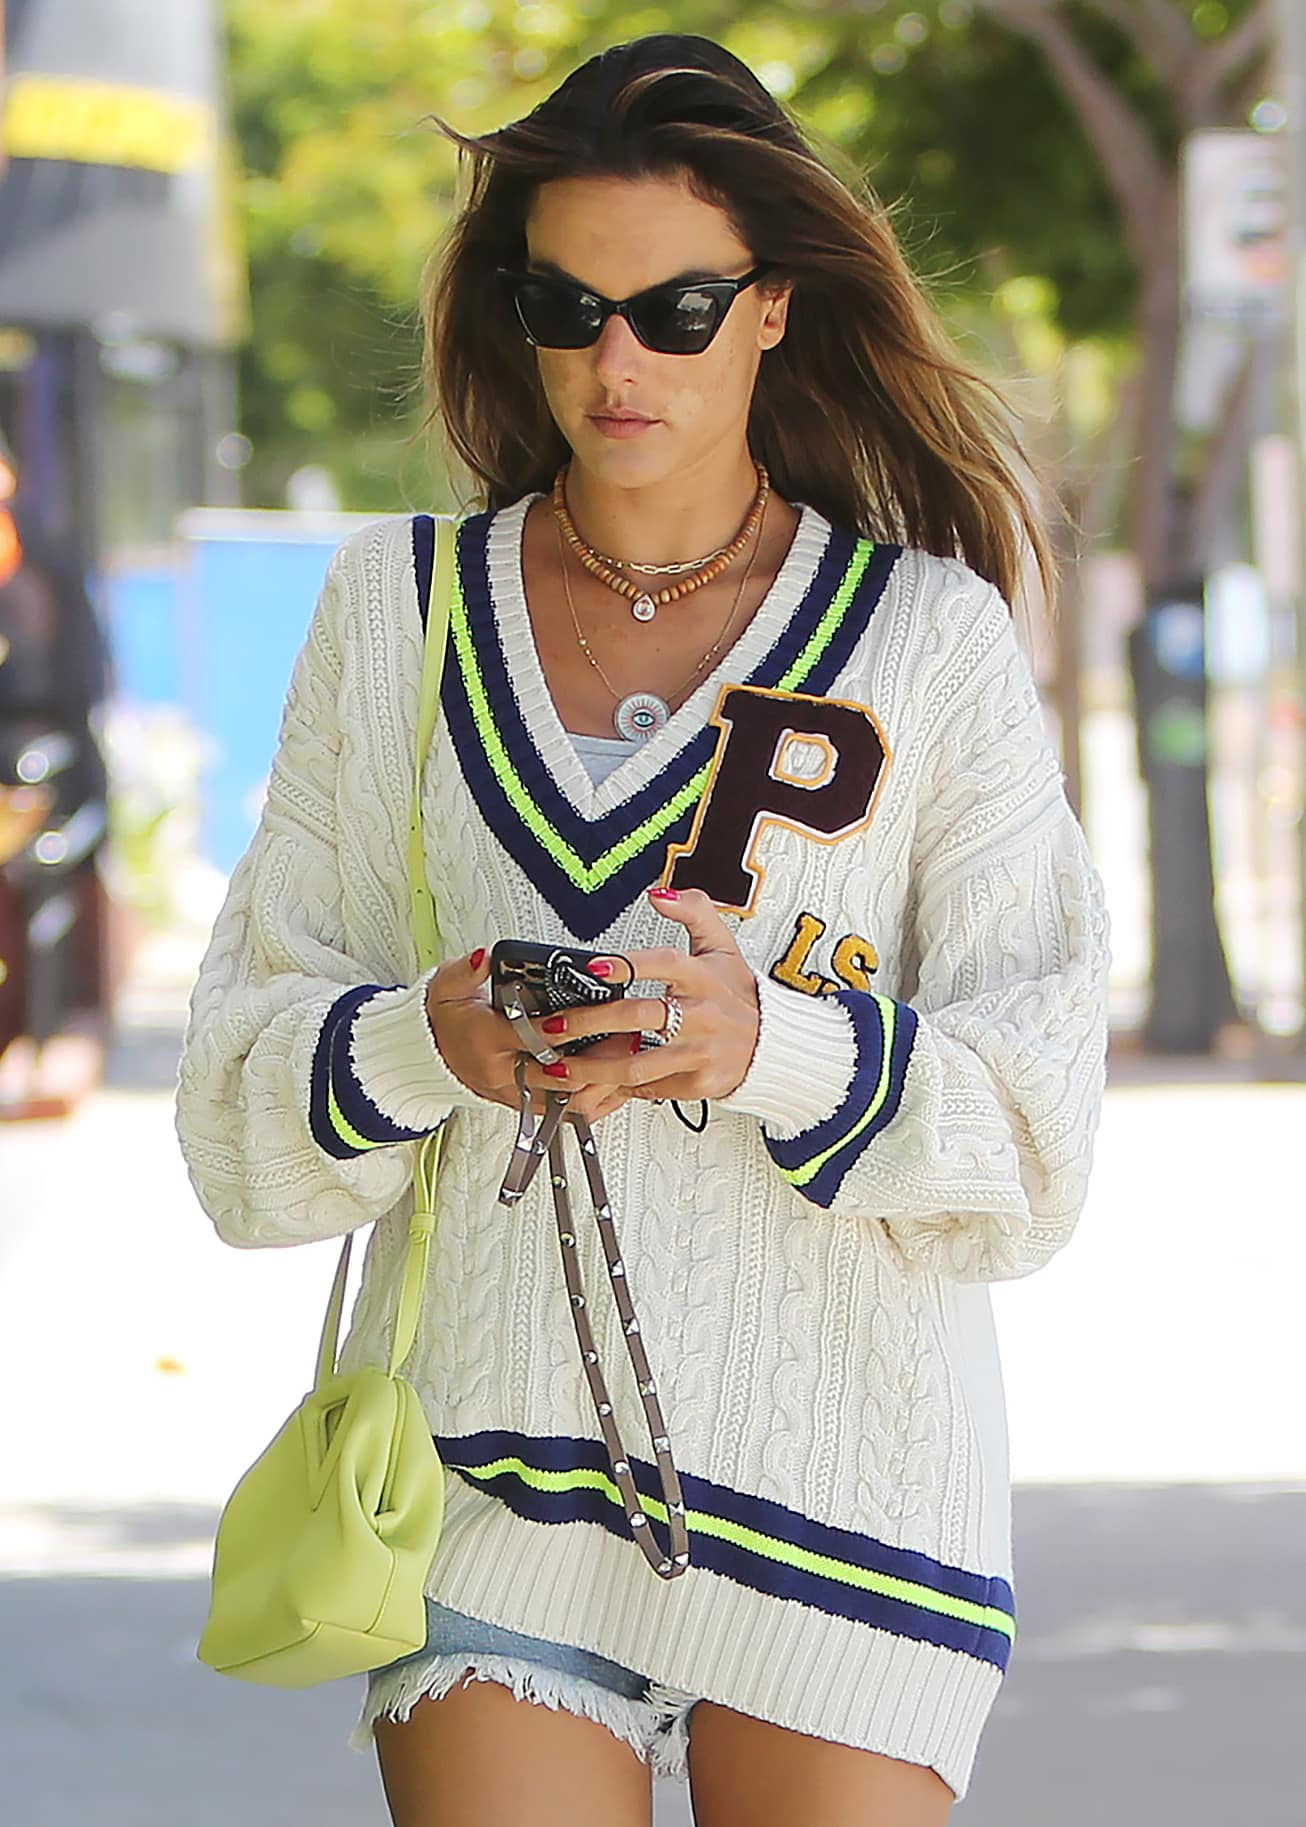 Alessandra Ambrosio styles her casual look with Jacquie Aiche necklaces, cat-eye sunnies, and a Bottega Veneta bag